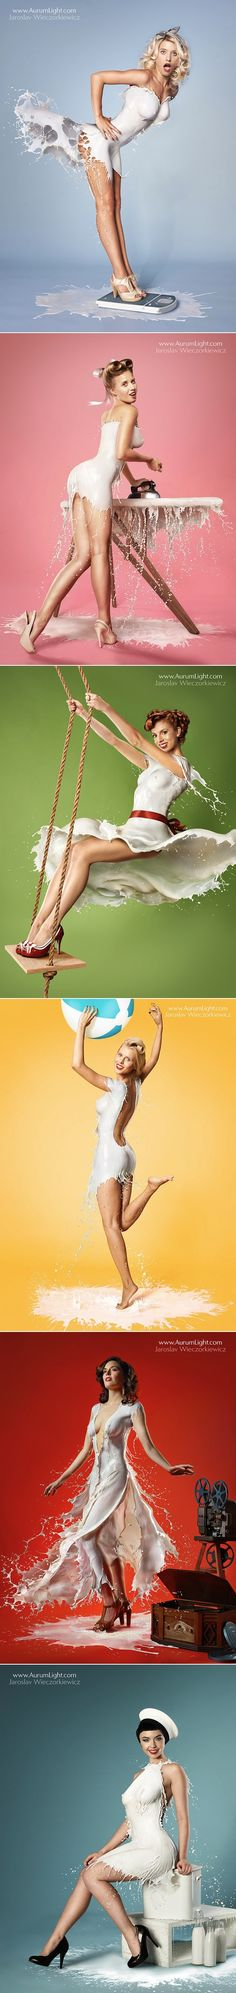 Sexy Pinup Inspired Photos Of Girls Wearing Clothes Made Of Milk Splashes